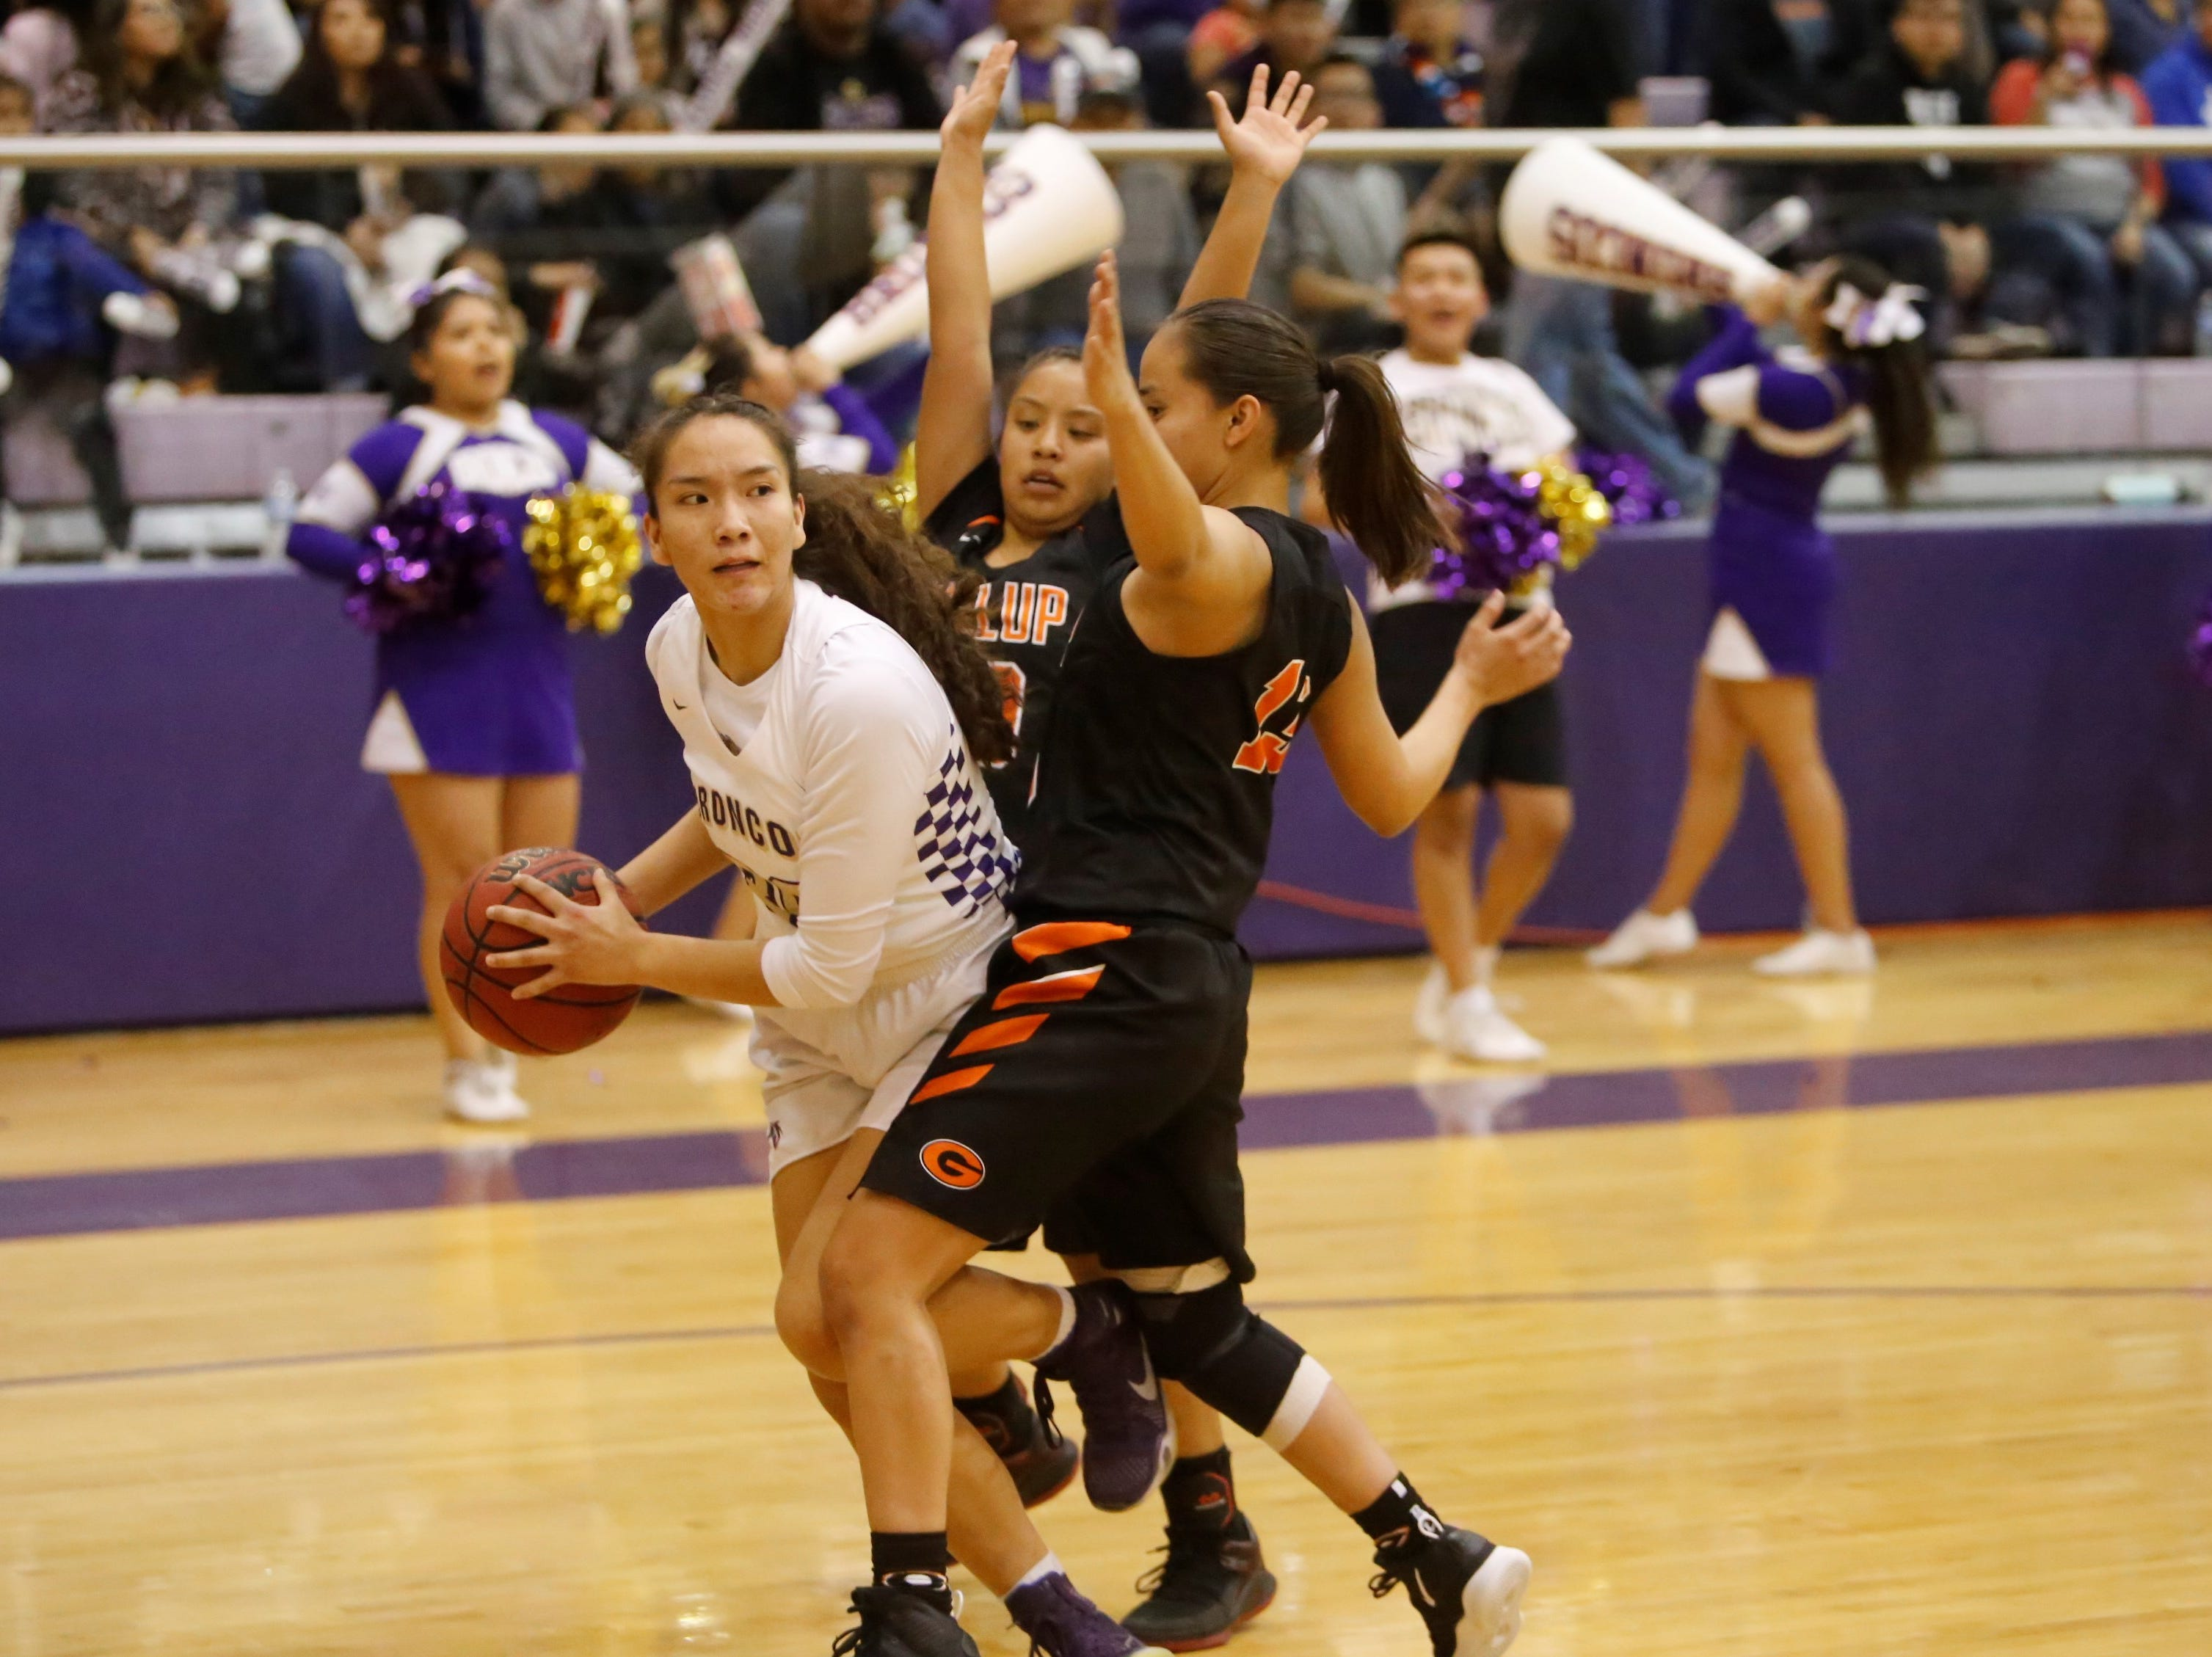 Kirtland Central's Siigrid Lii'bilnaghahi looks to pass the ball along the baseline against Gallup's Kamryn Yazzie (20) and Hanna Toledo (13) during Friday's District 1-4A tournament championship game at Bronco Arena.